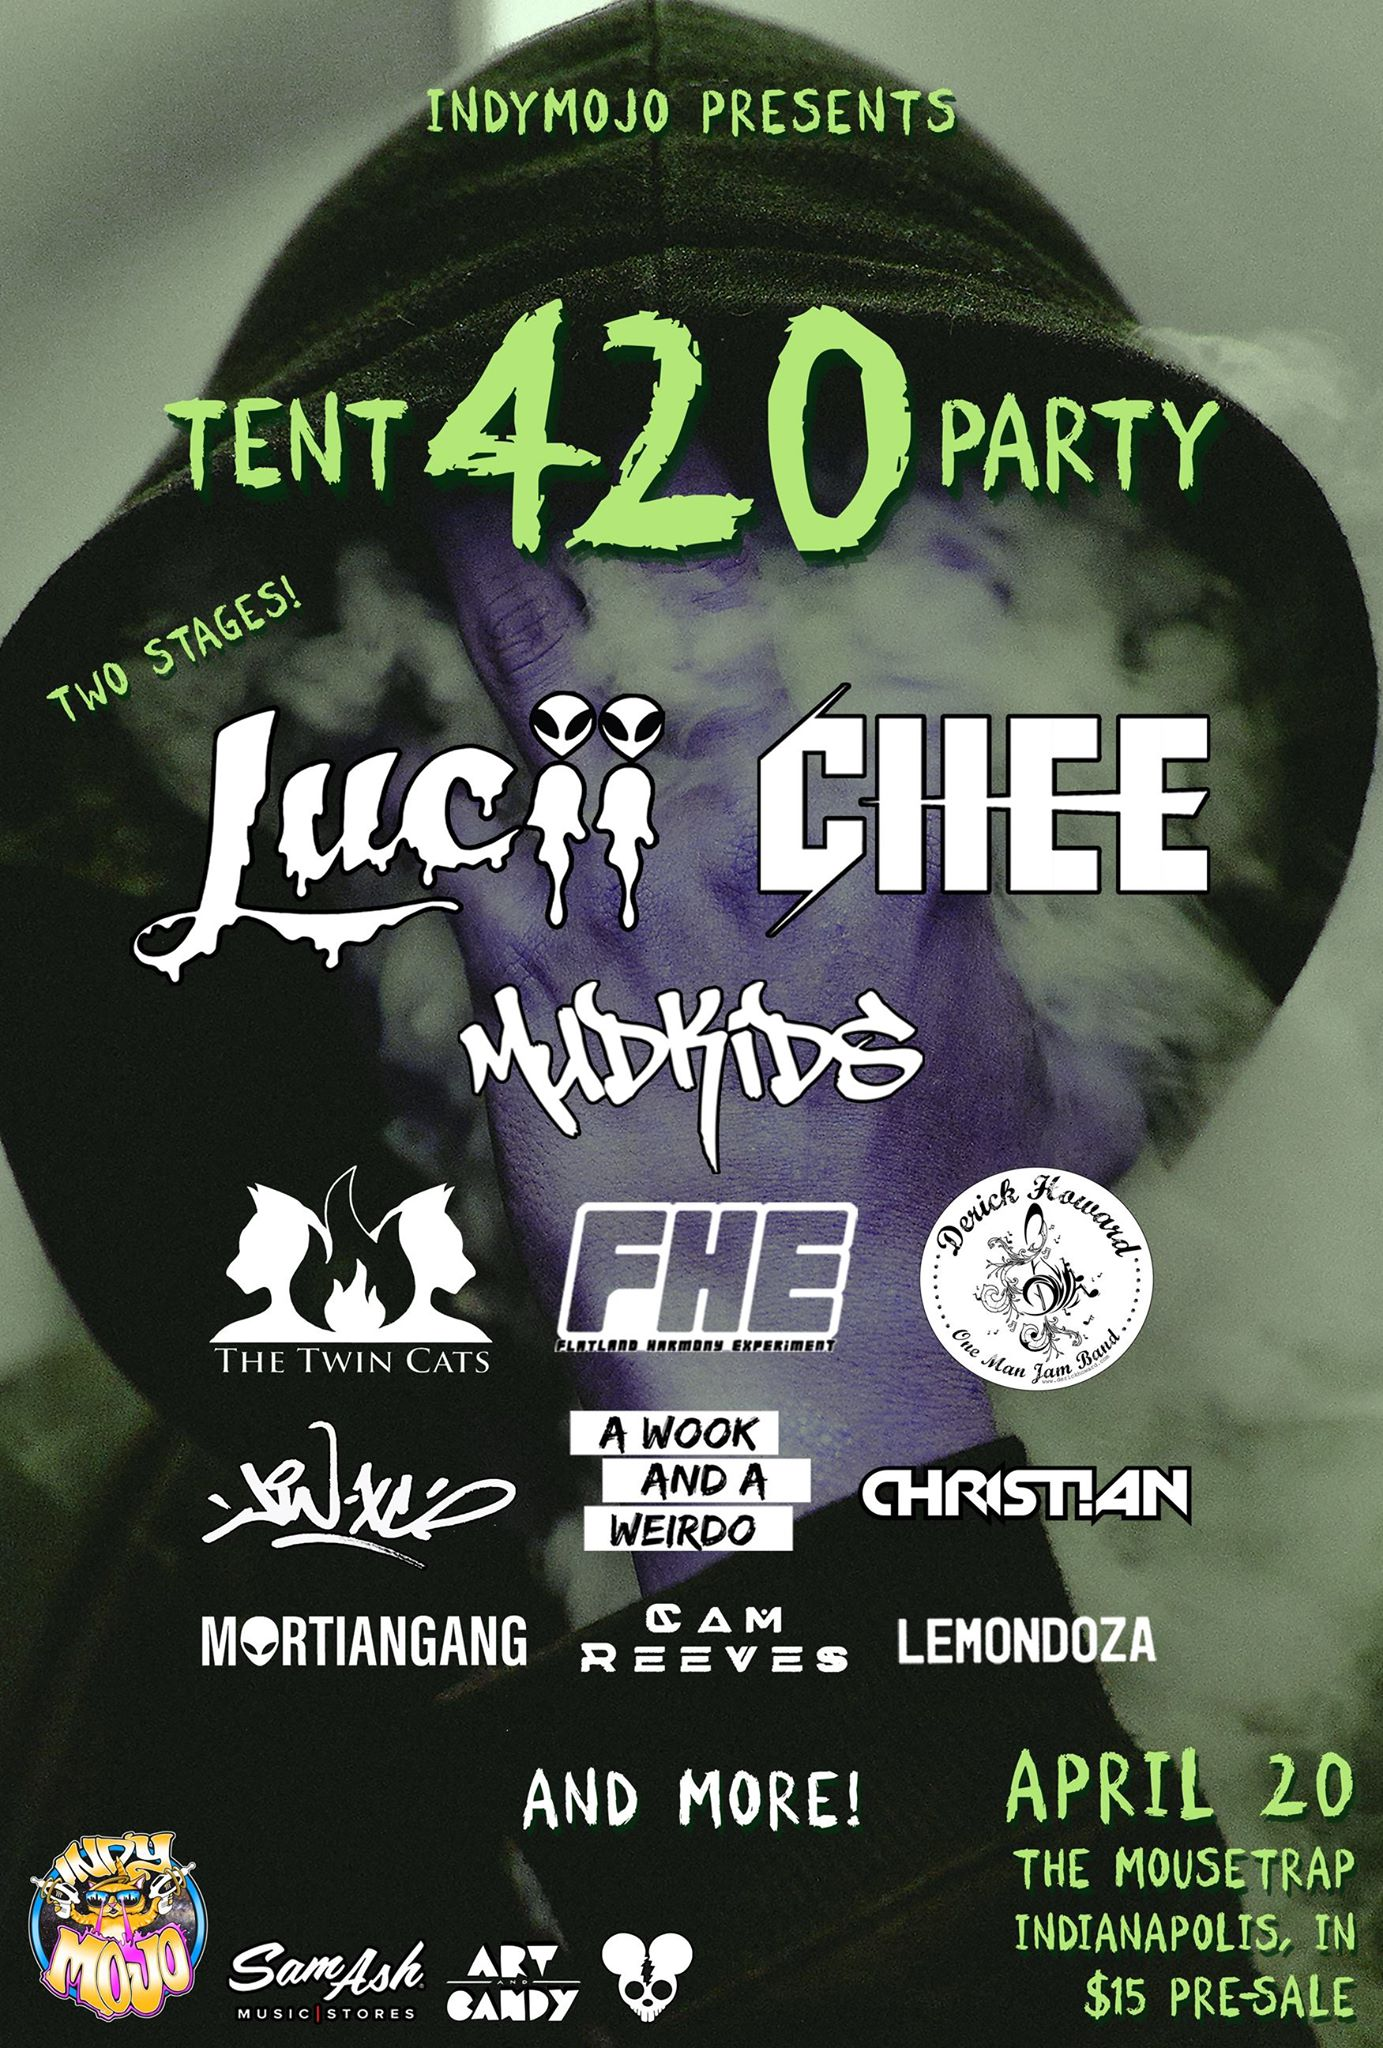 420 Tent Party w/ Lucii, Chee, Mudkids & more - Saturday, April 20th